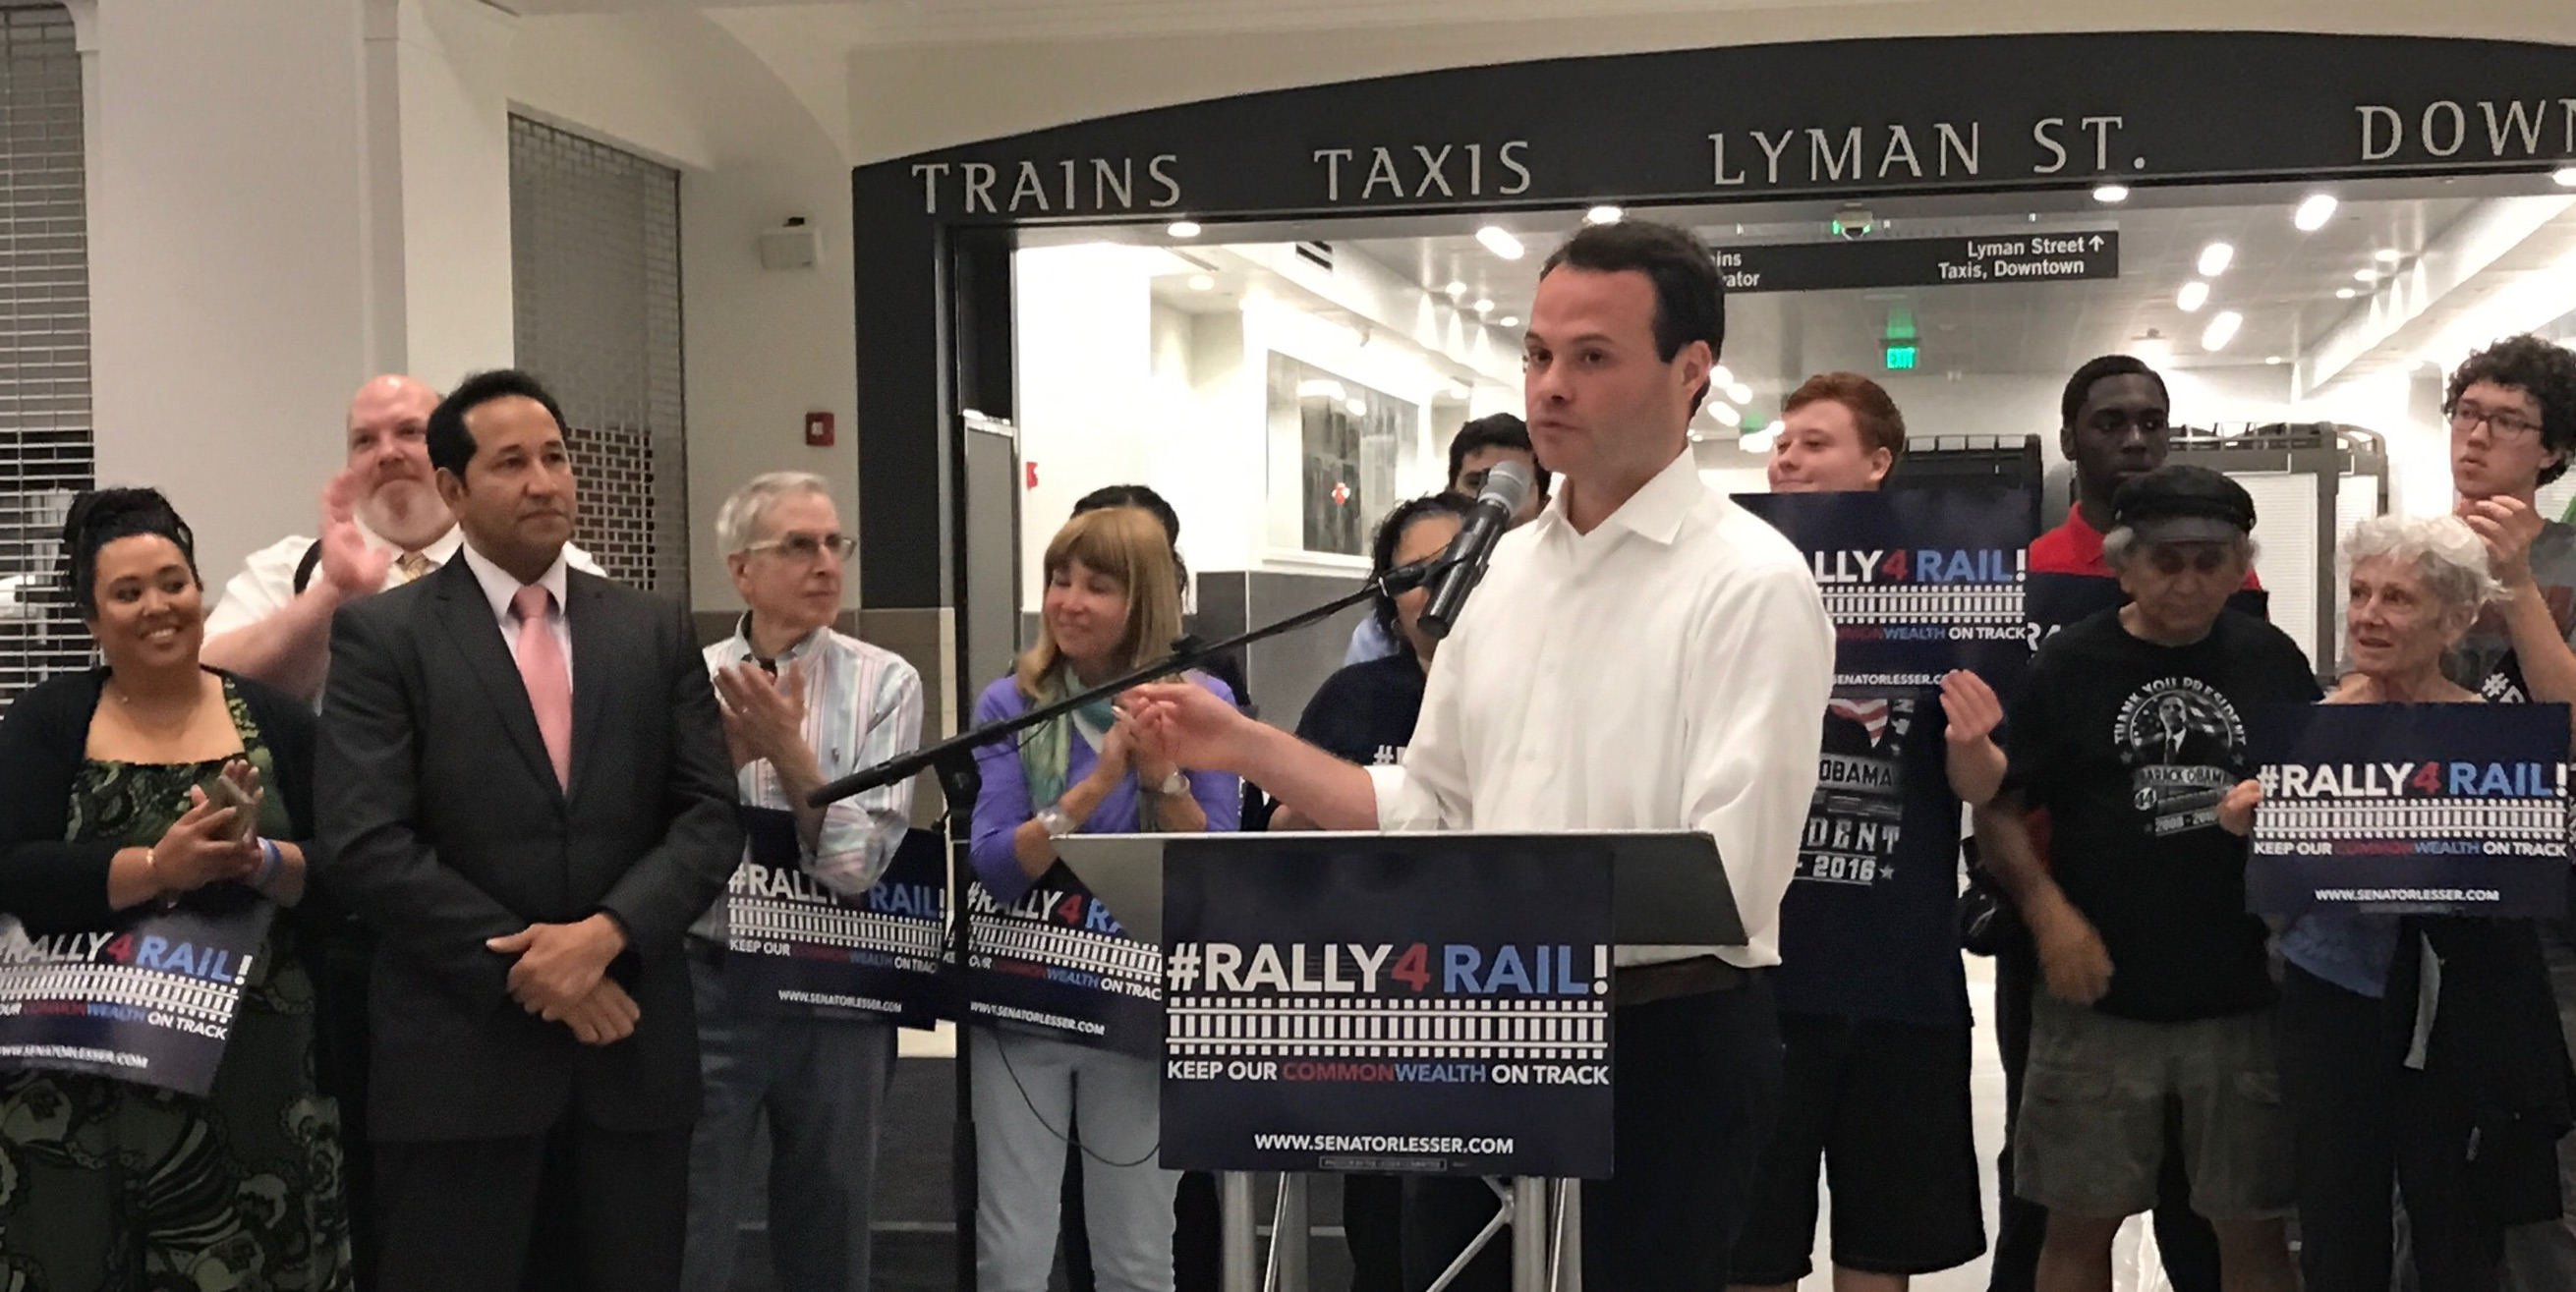 An image of Sen. Eric Lesser (D-MA) standing amongst a small crowd of individuals.